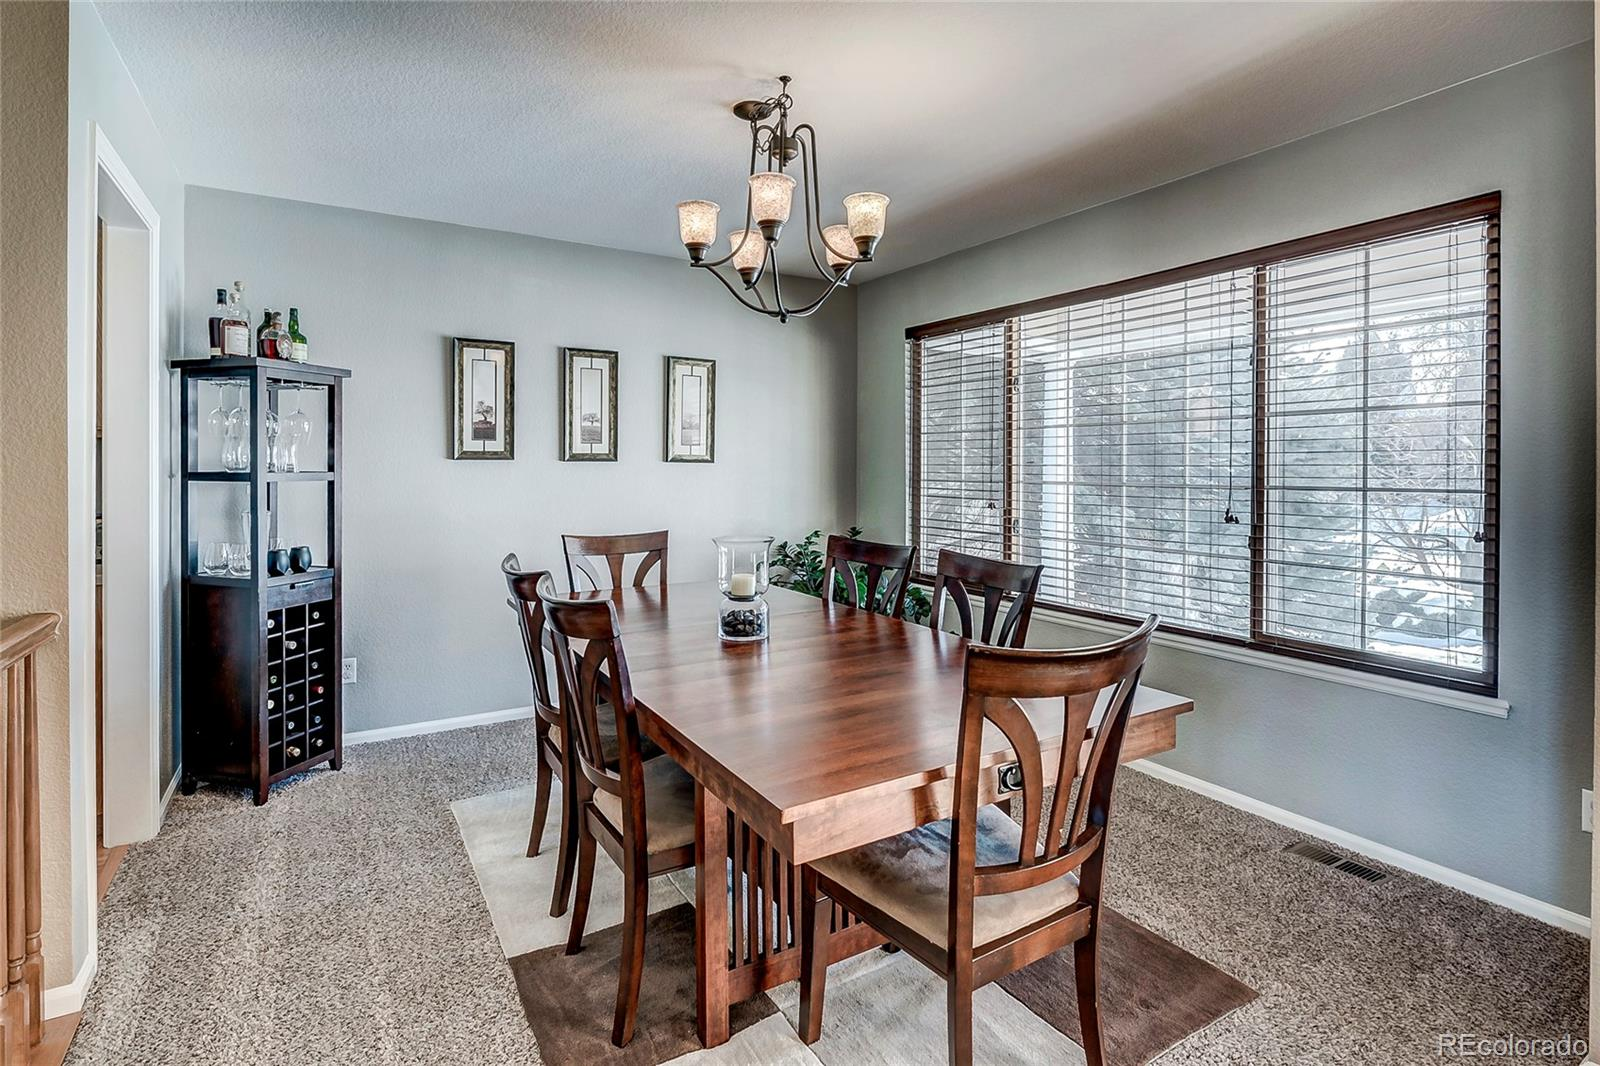 MLS# 4951528 - 6 - 15781 W 66th Place, Arvada, CO 80007